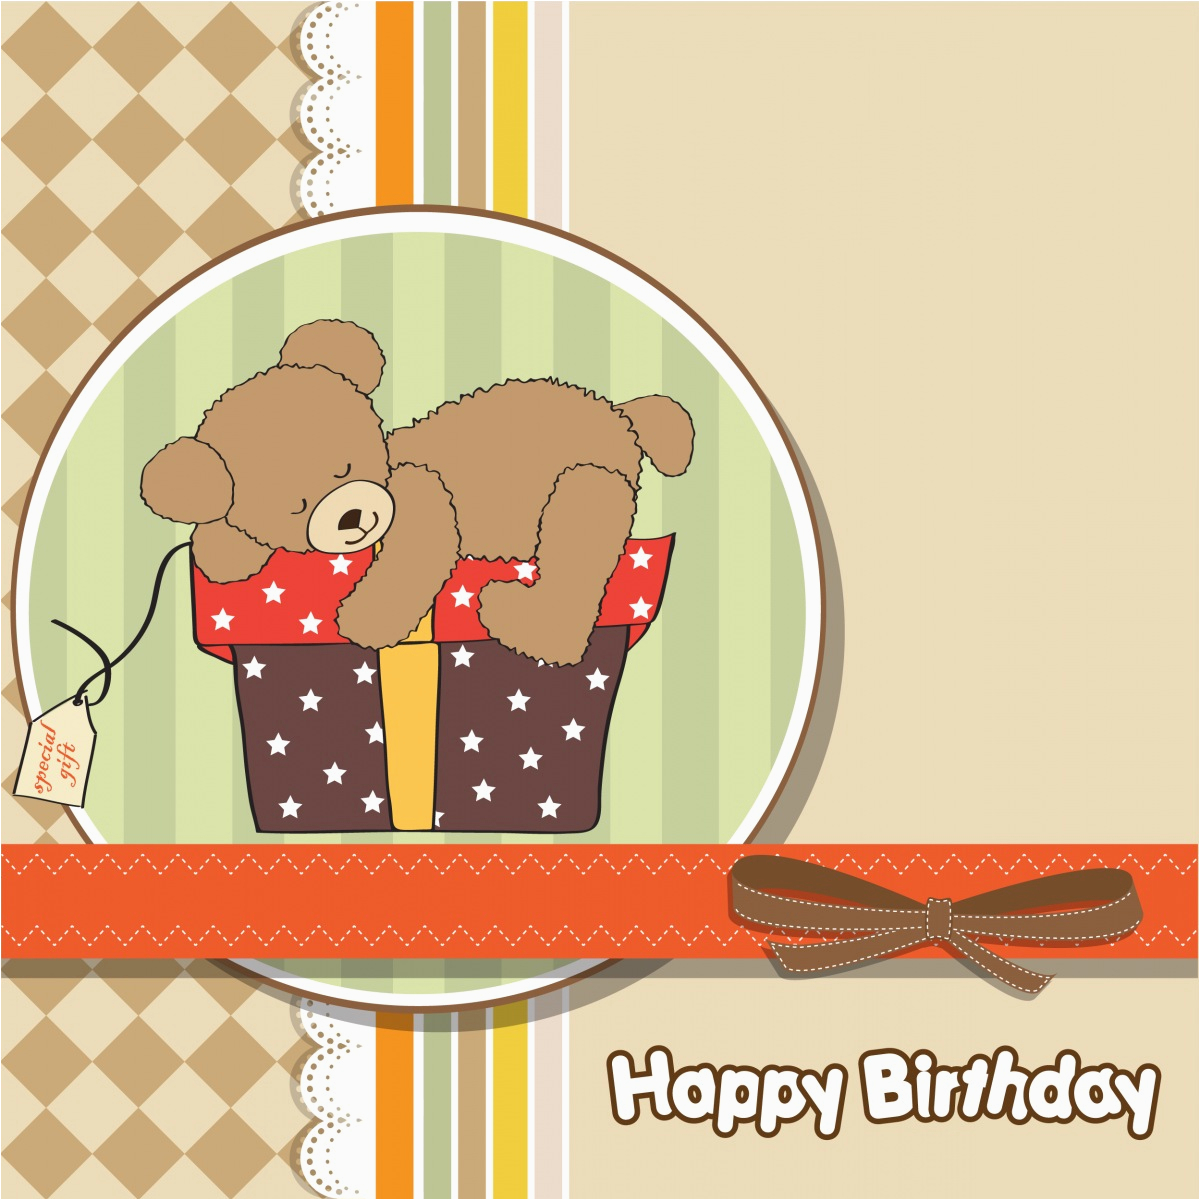 Free Birthday Cards Funny Animated